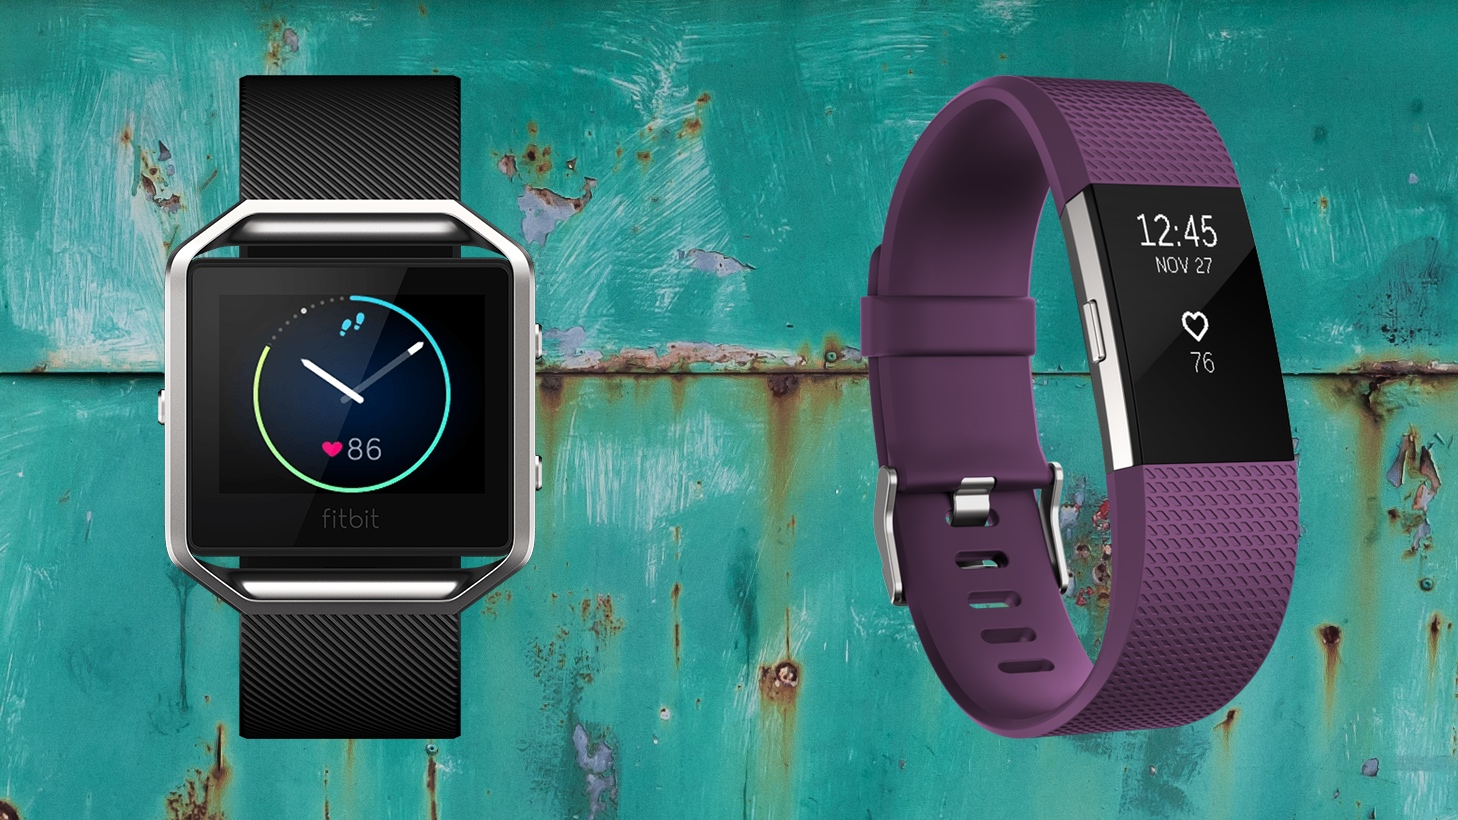 Fitbit Charge 2 v Fitbit Blaze